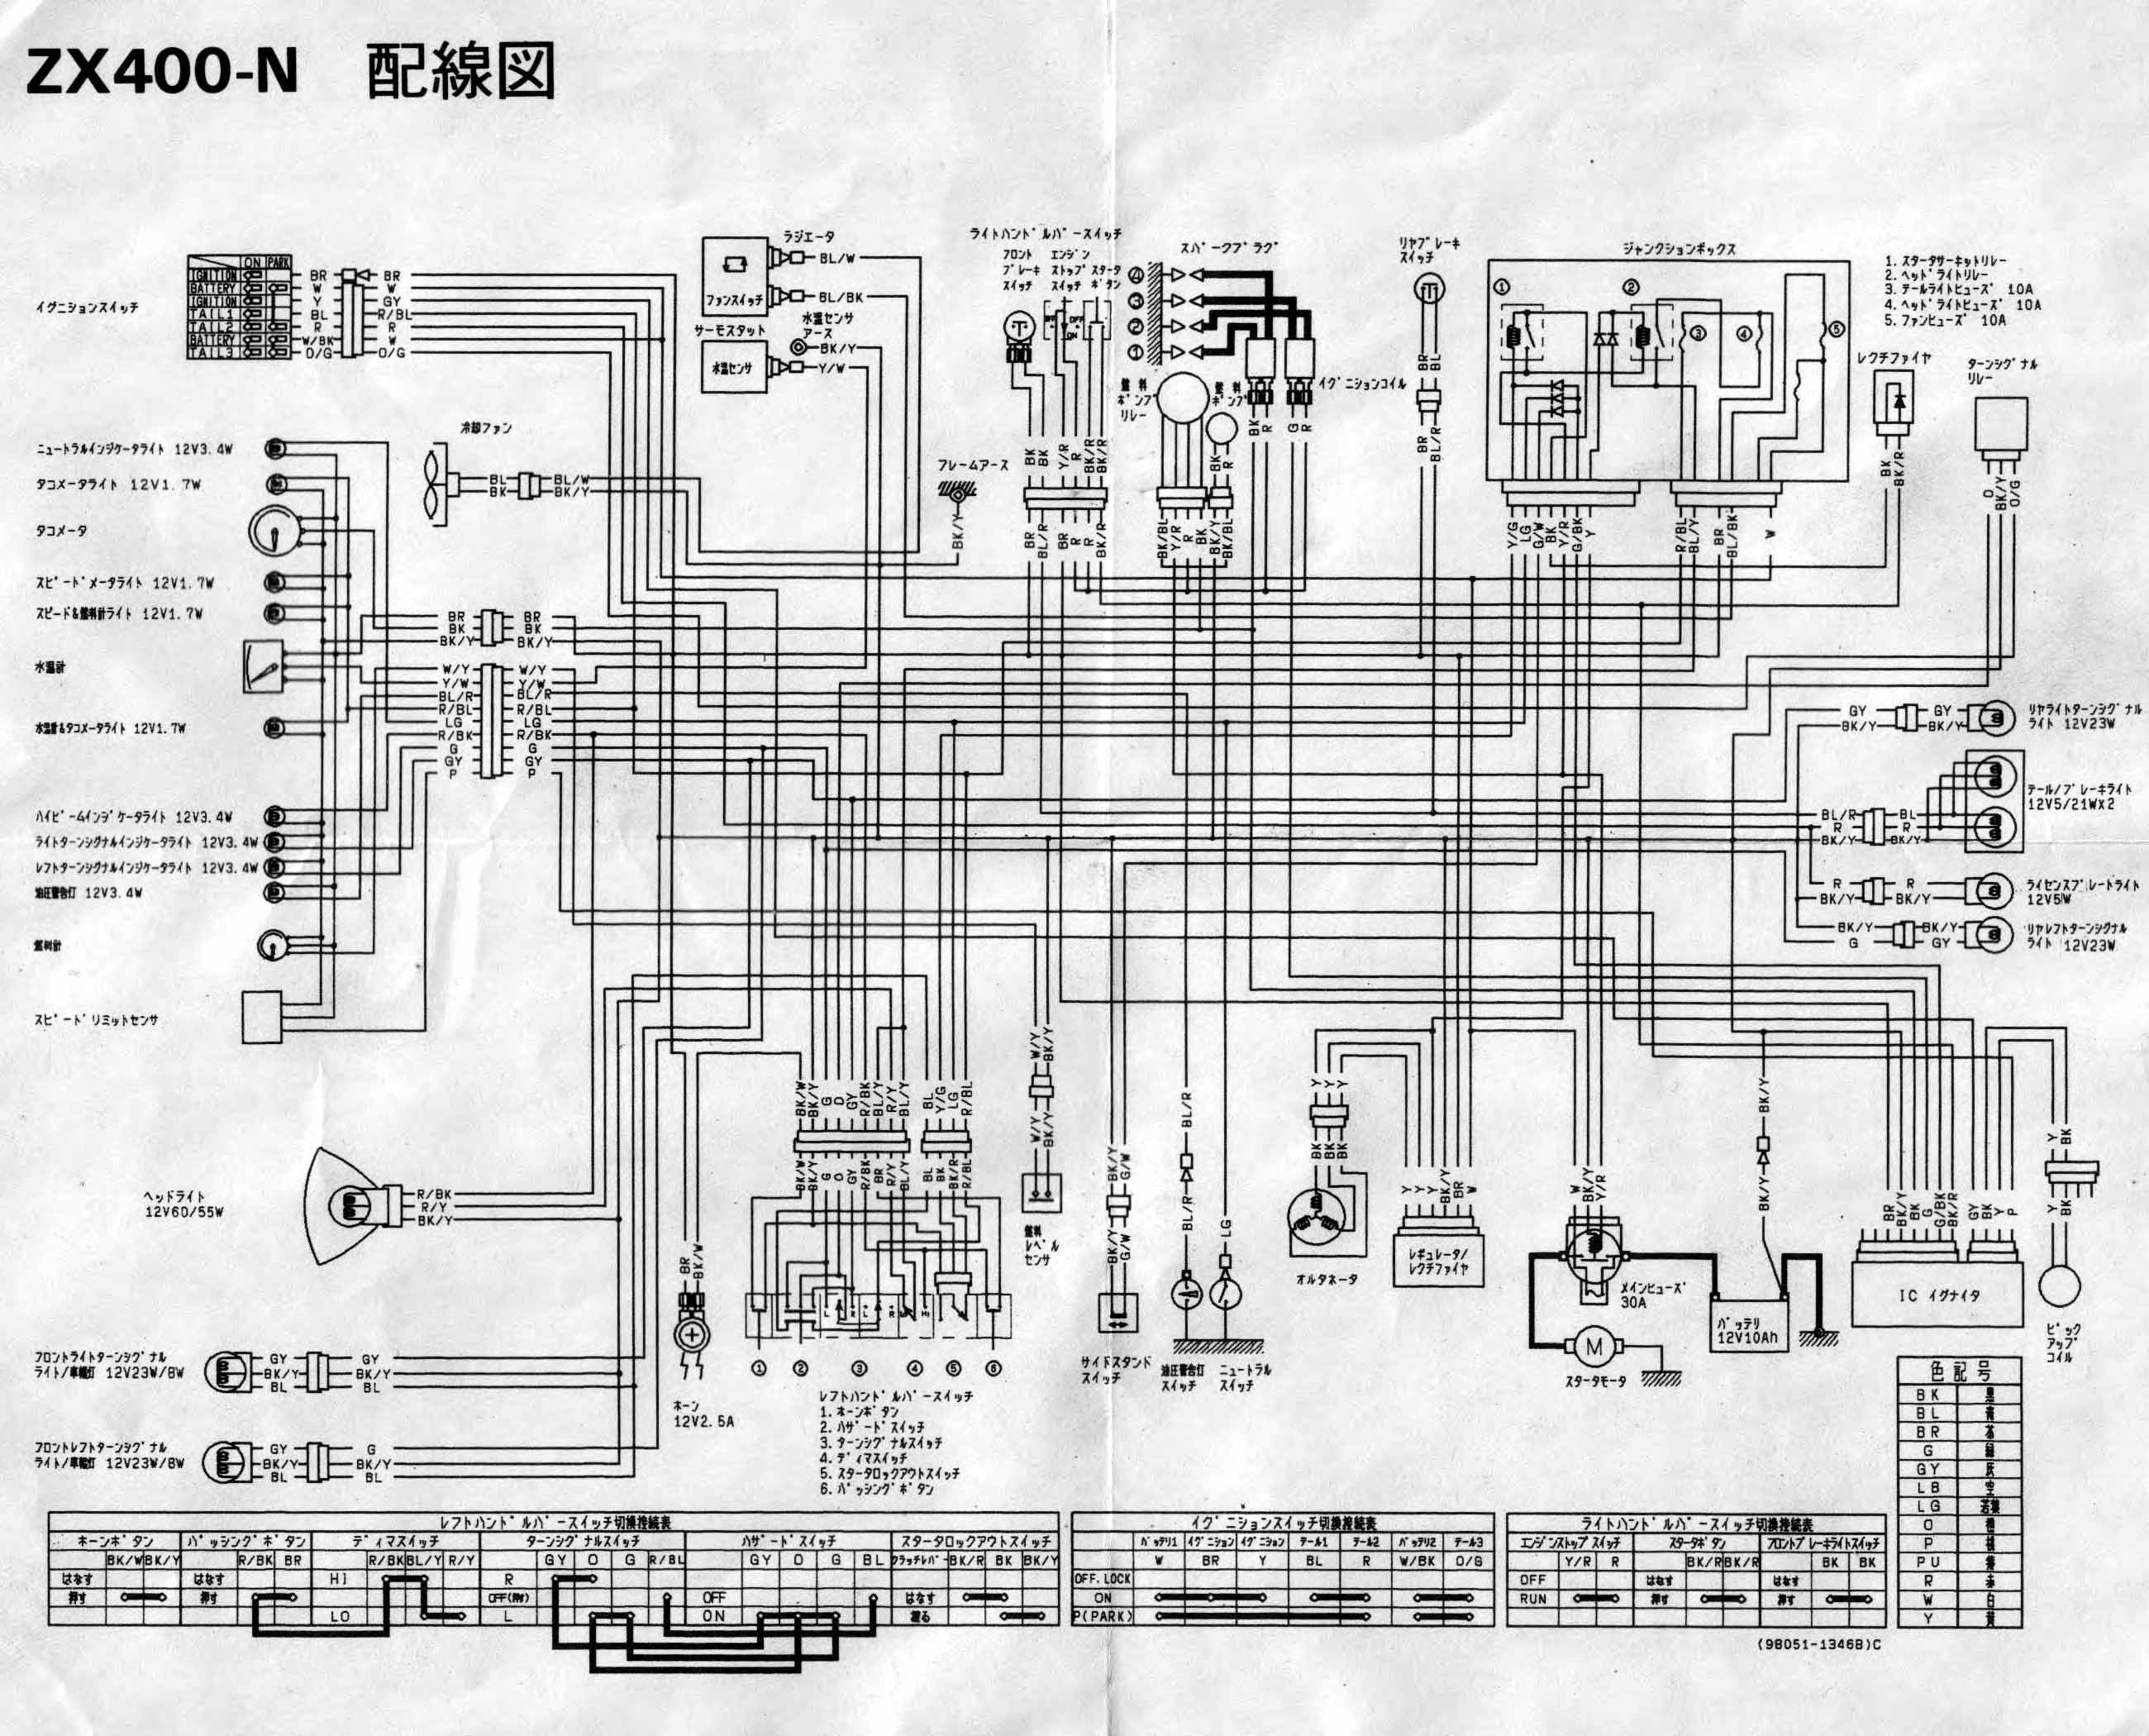 [SCHEMATICS_4US]  Ninja 250 Wiring Diagram -65 Corvette Radio Wiring | Begeboy Wiring Diagram  Source | Ninja 250 Wiring Diagram |  | Begeboy Wiring Diagram Source